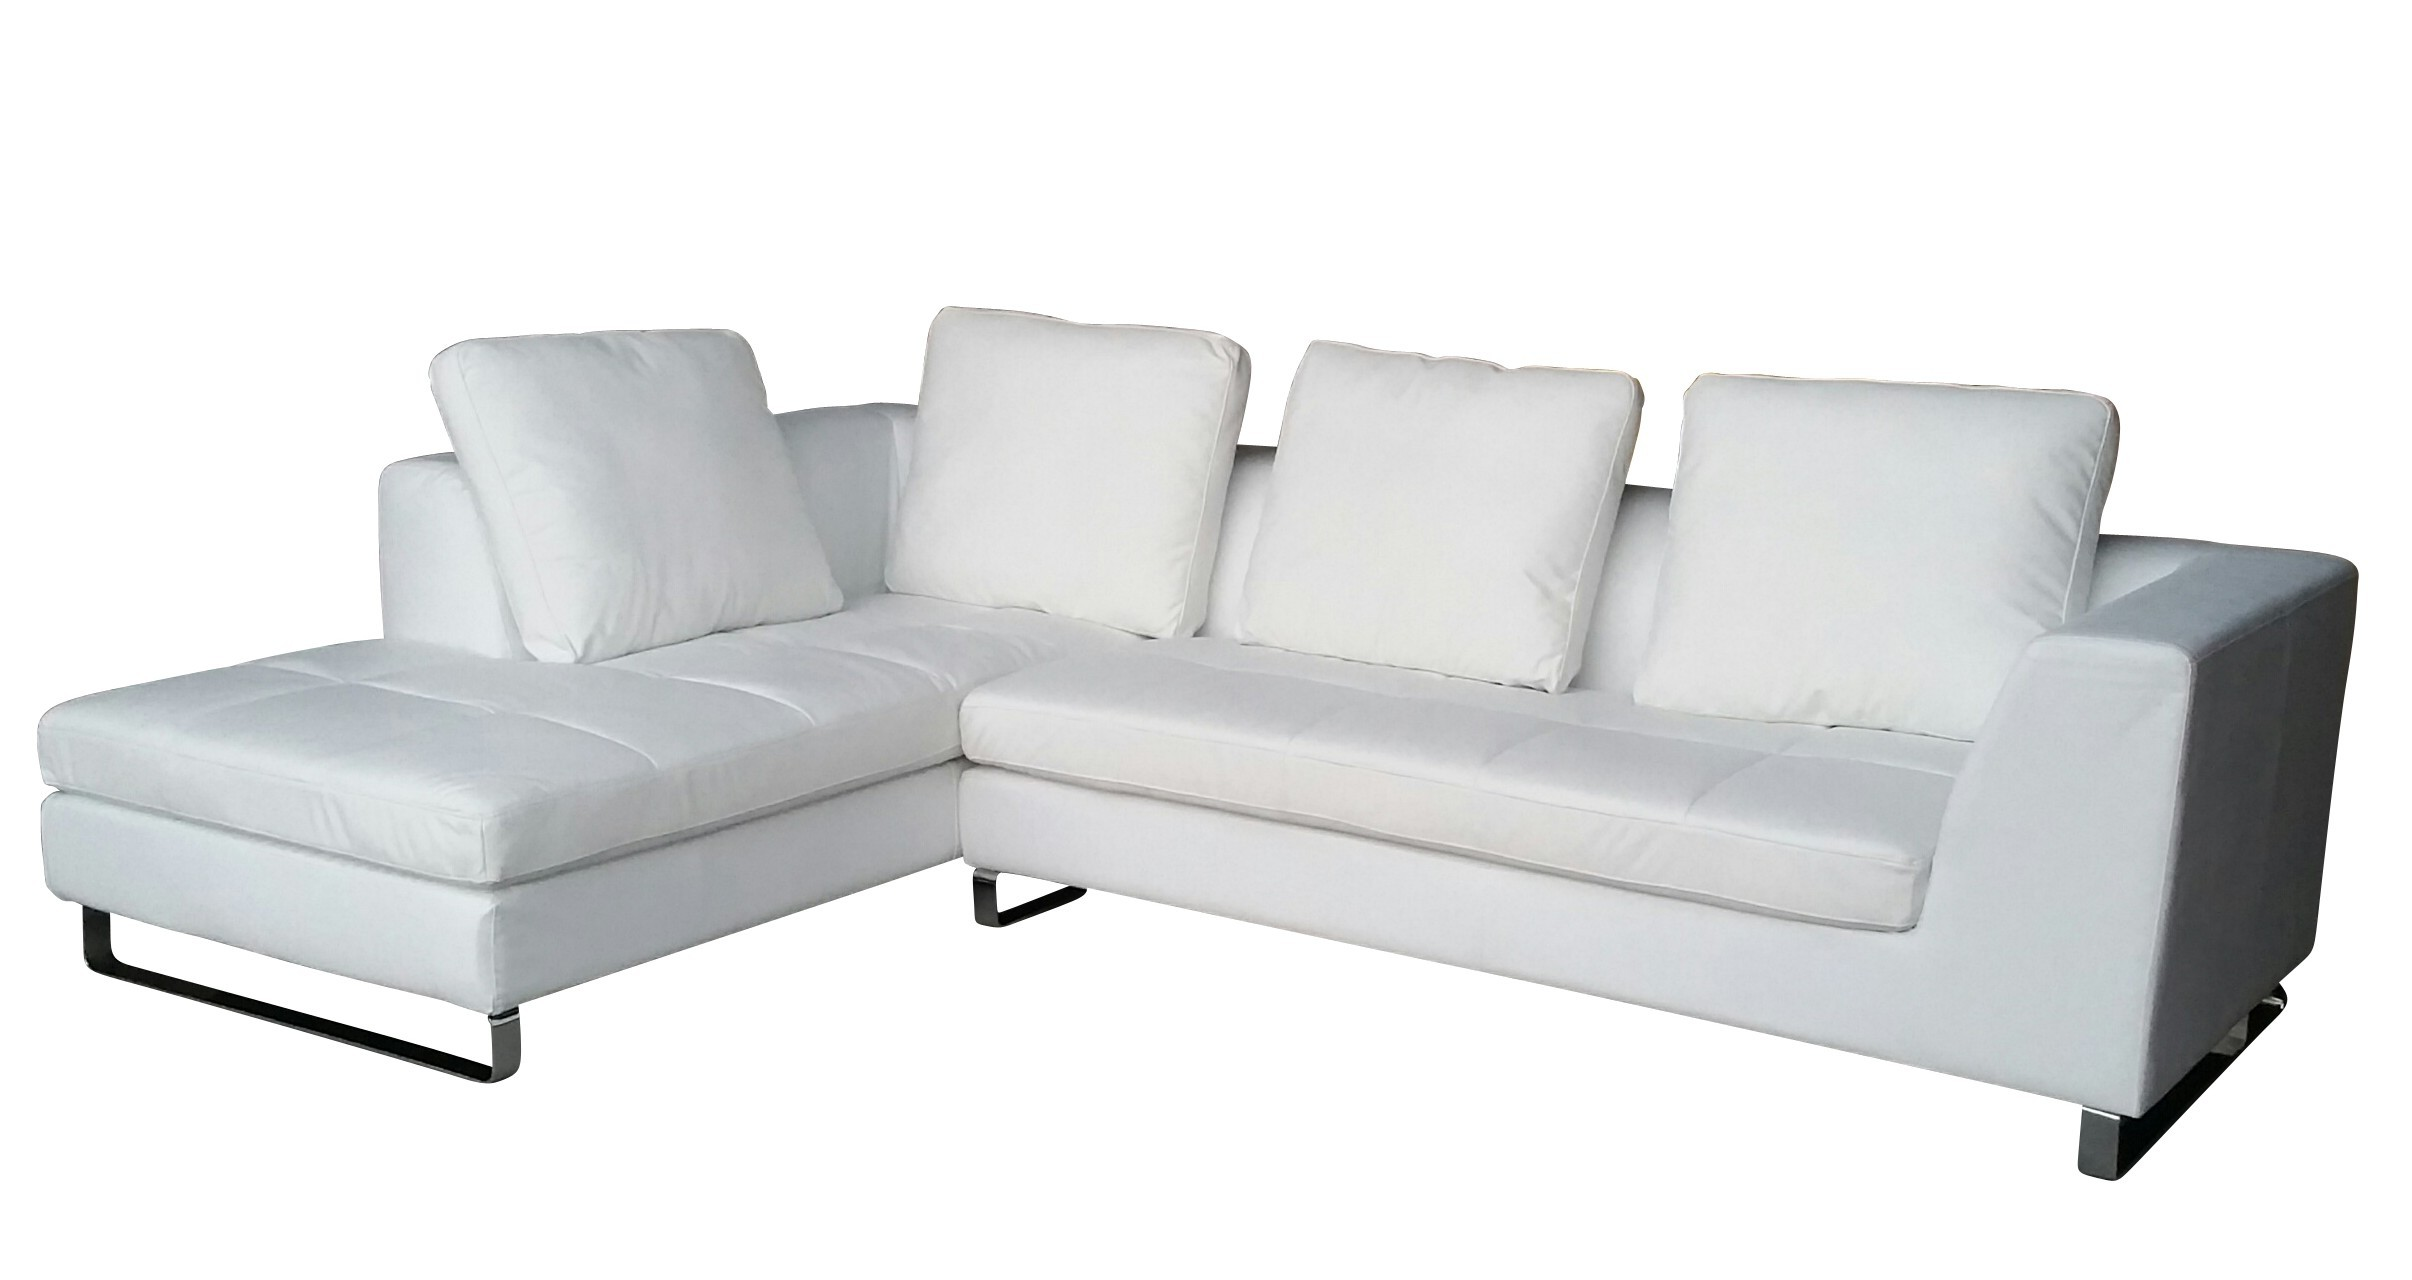 eckcouch sofort lieferbar cheap awesome l form sofa couch a couch u form sofort lieferbar l. Black Bedroom Furniture Sets. Home Design Ideas